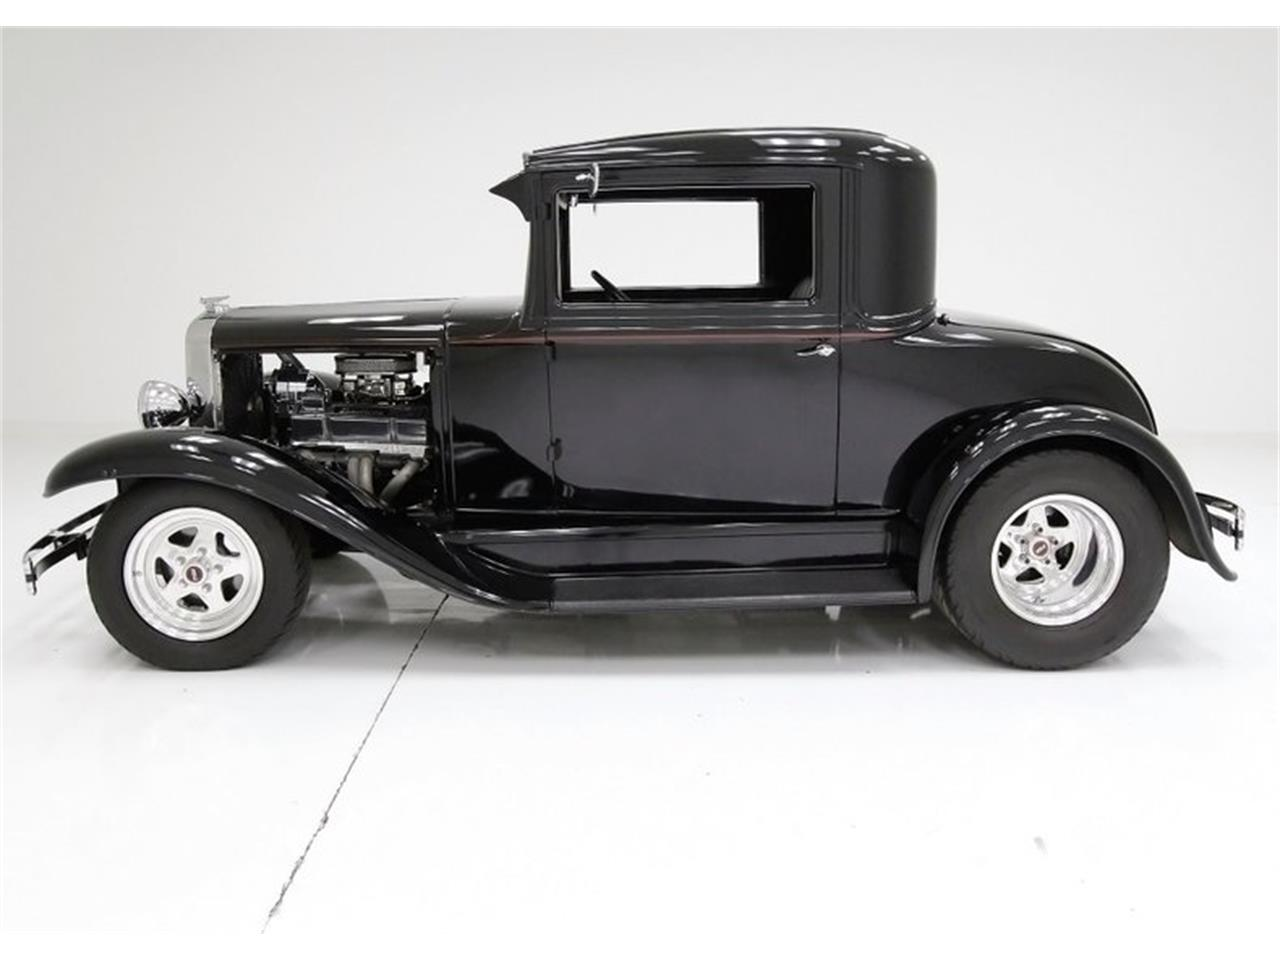 1930 Chevrolet 3-Window Coupe for sale in Morgantown, PA – photo 2